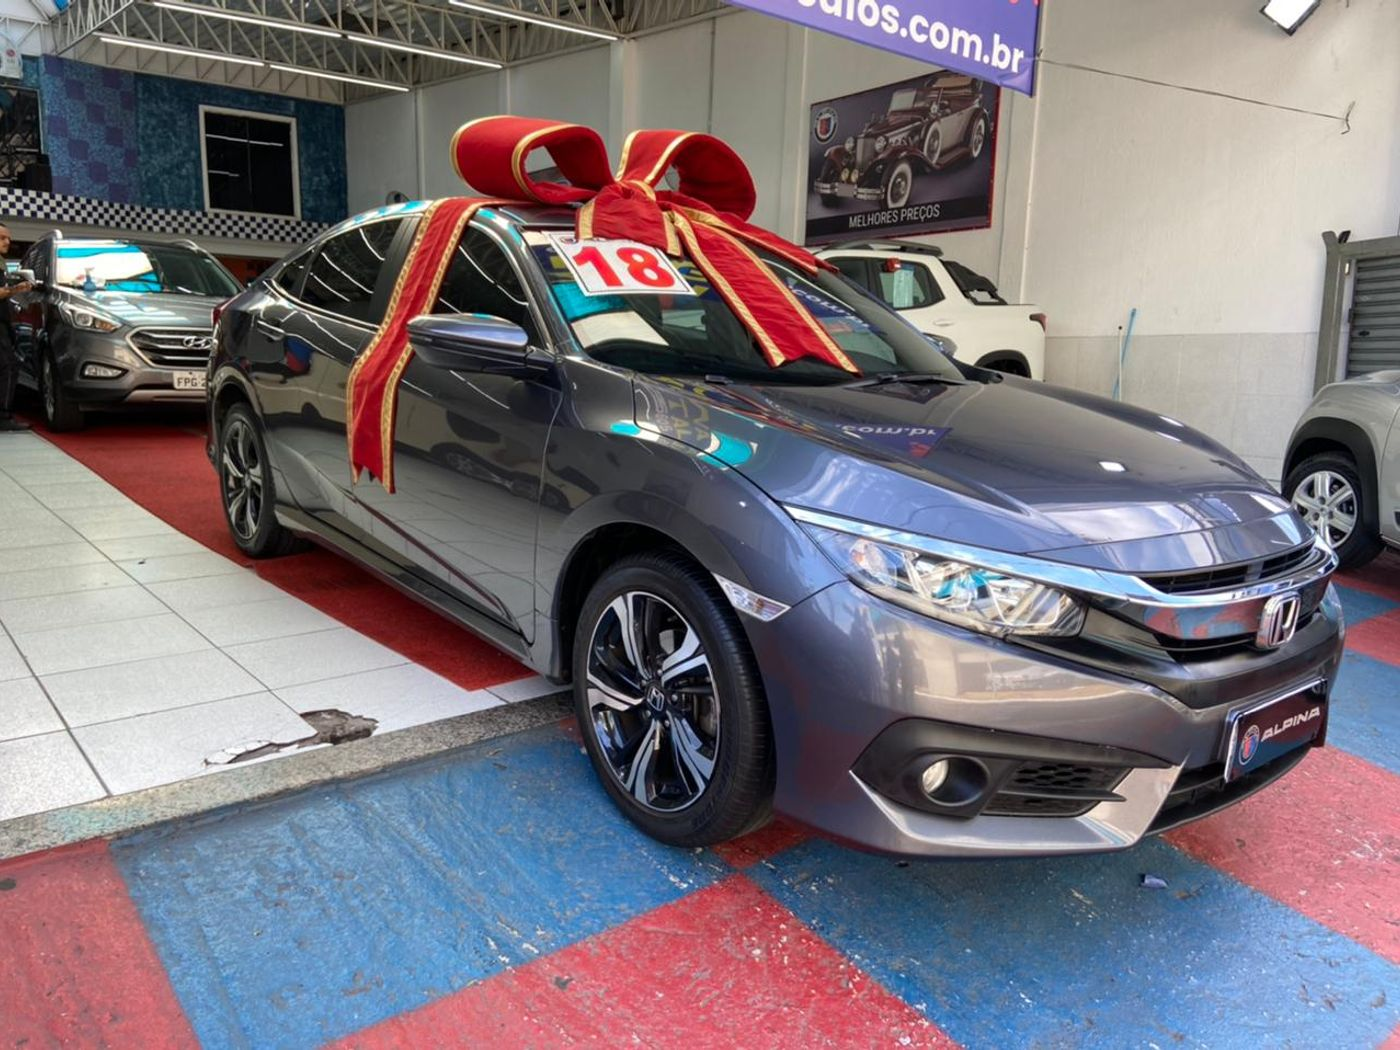 Honda Civic Sedan EX 2.0 Flex 16V Aut.4p